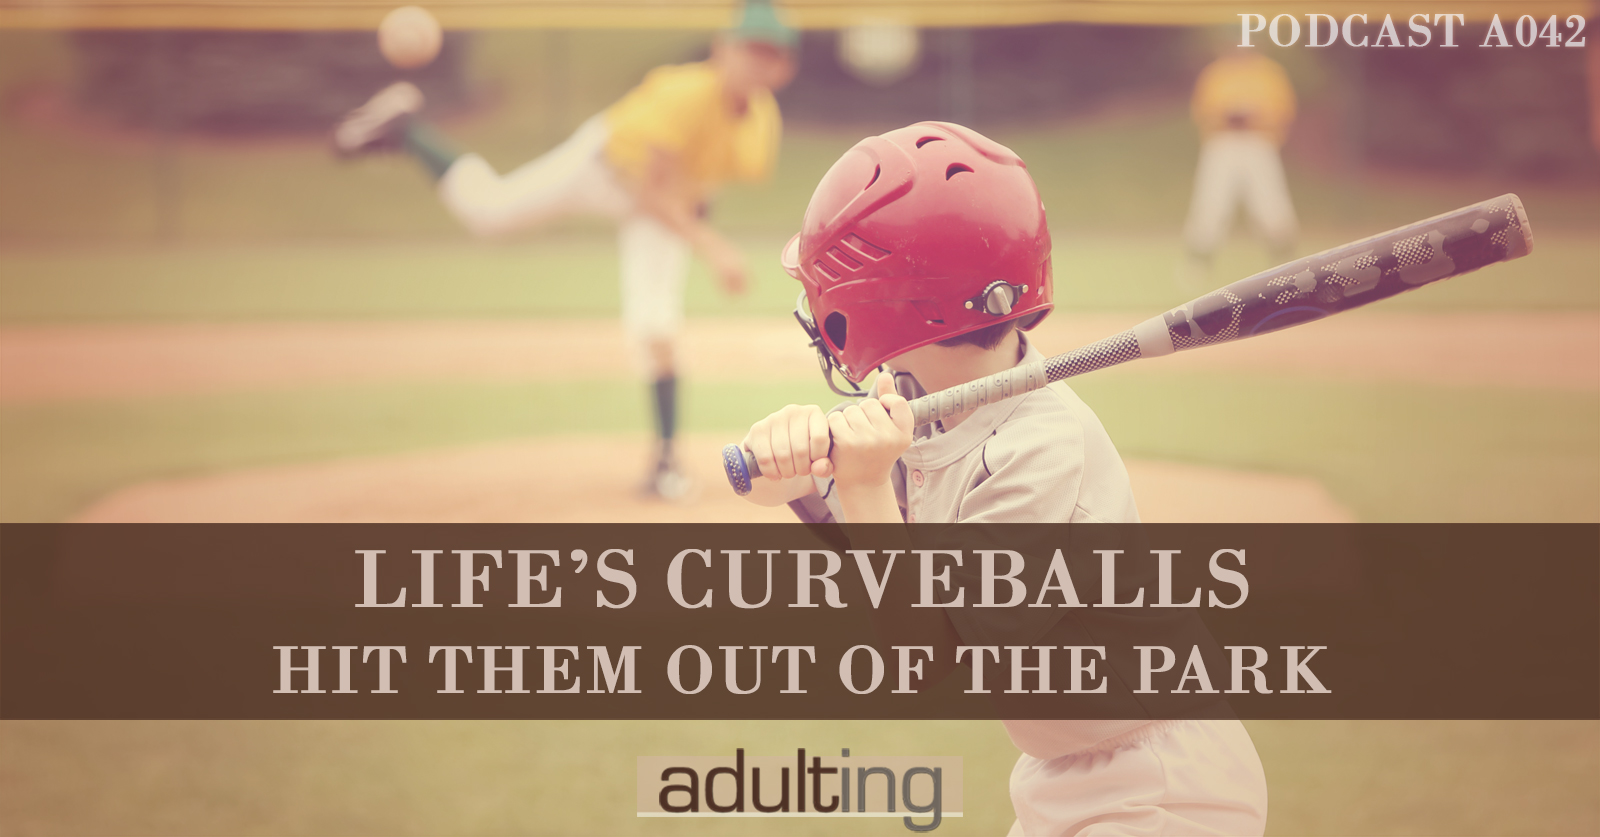 Enlightone: [A042] Life's Curveballs: Hit Them Out Of The Park